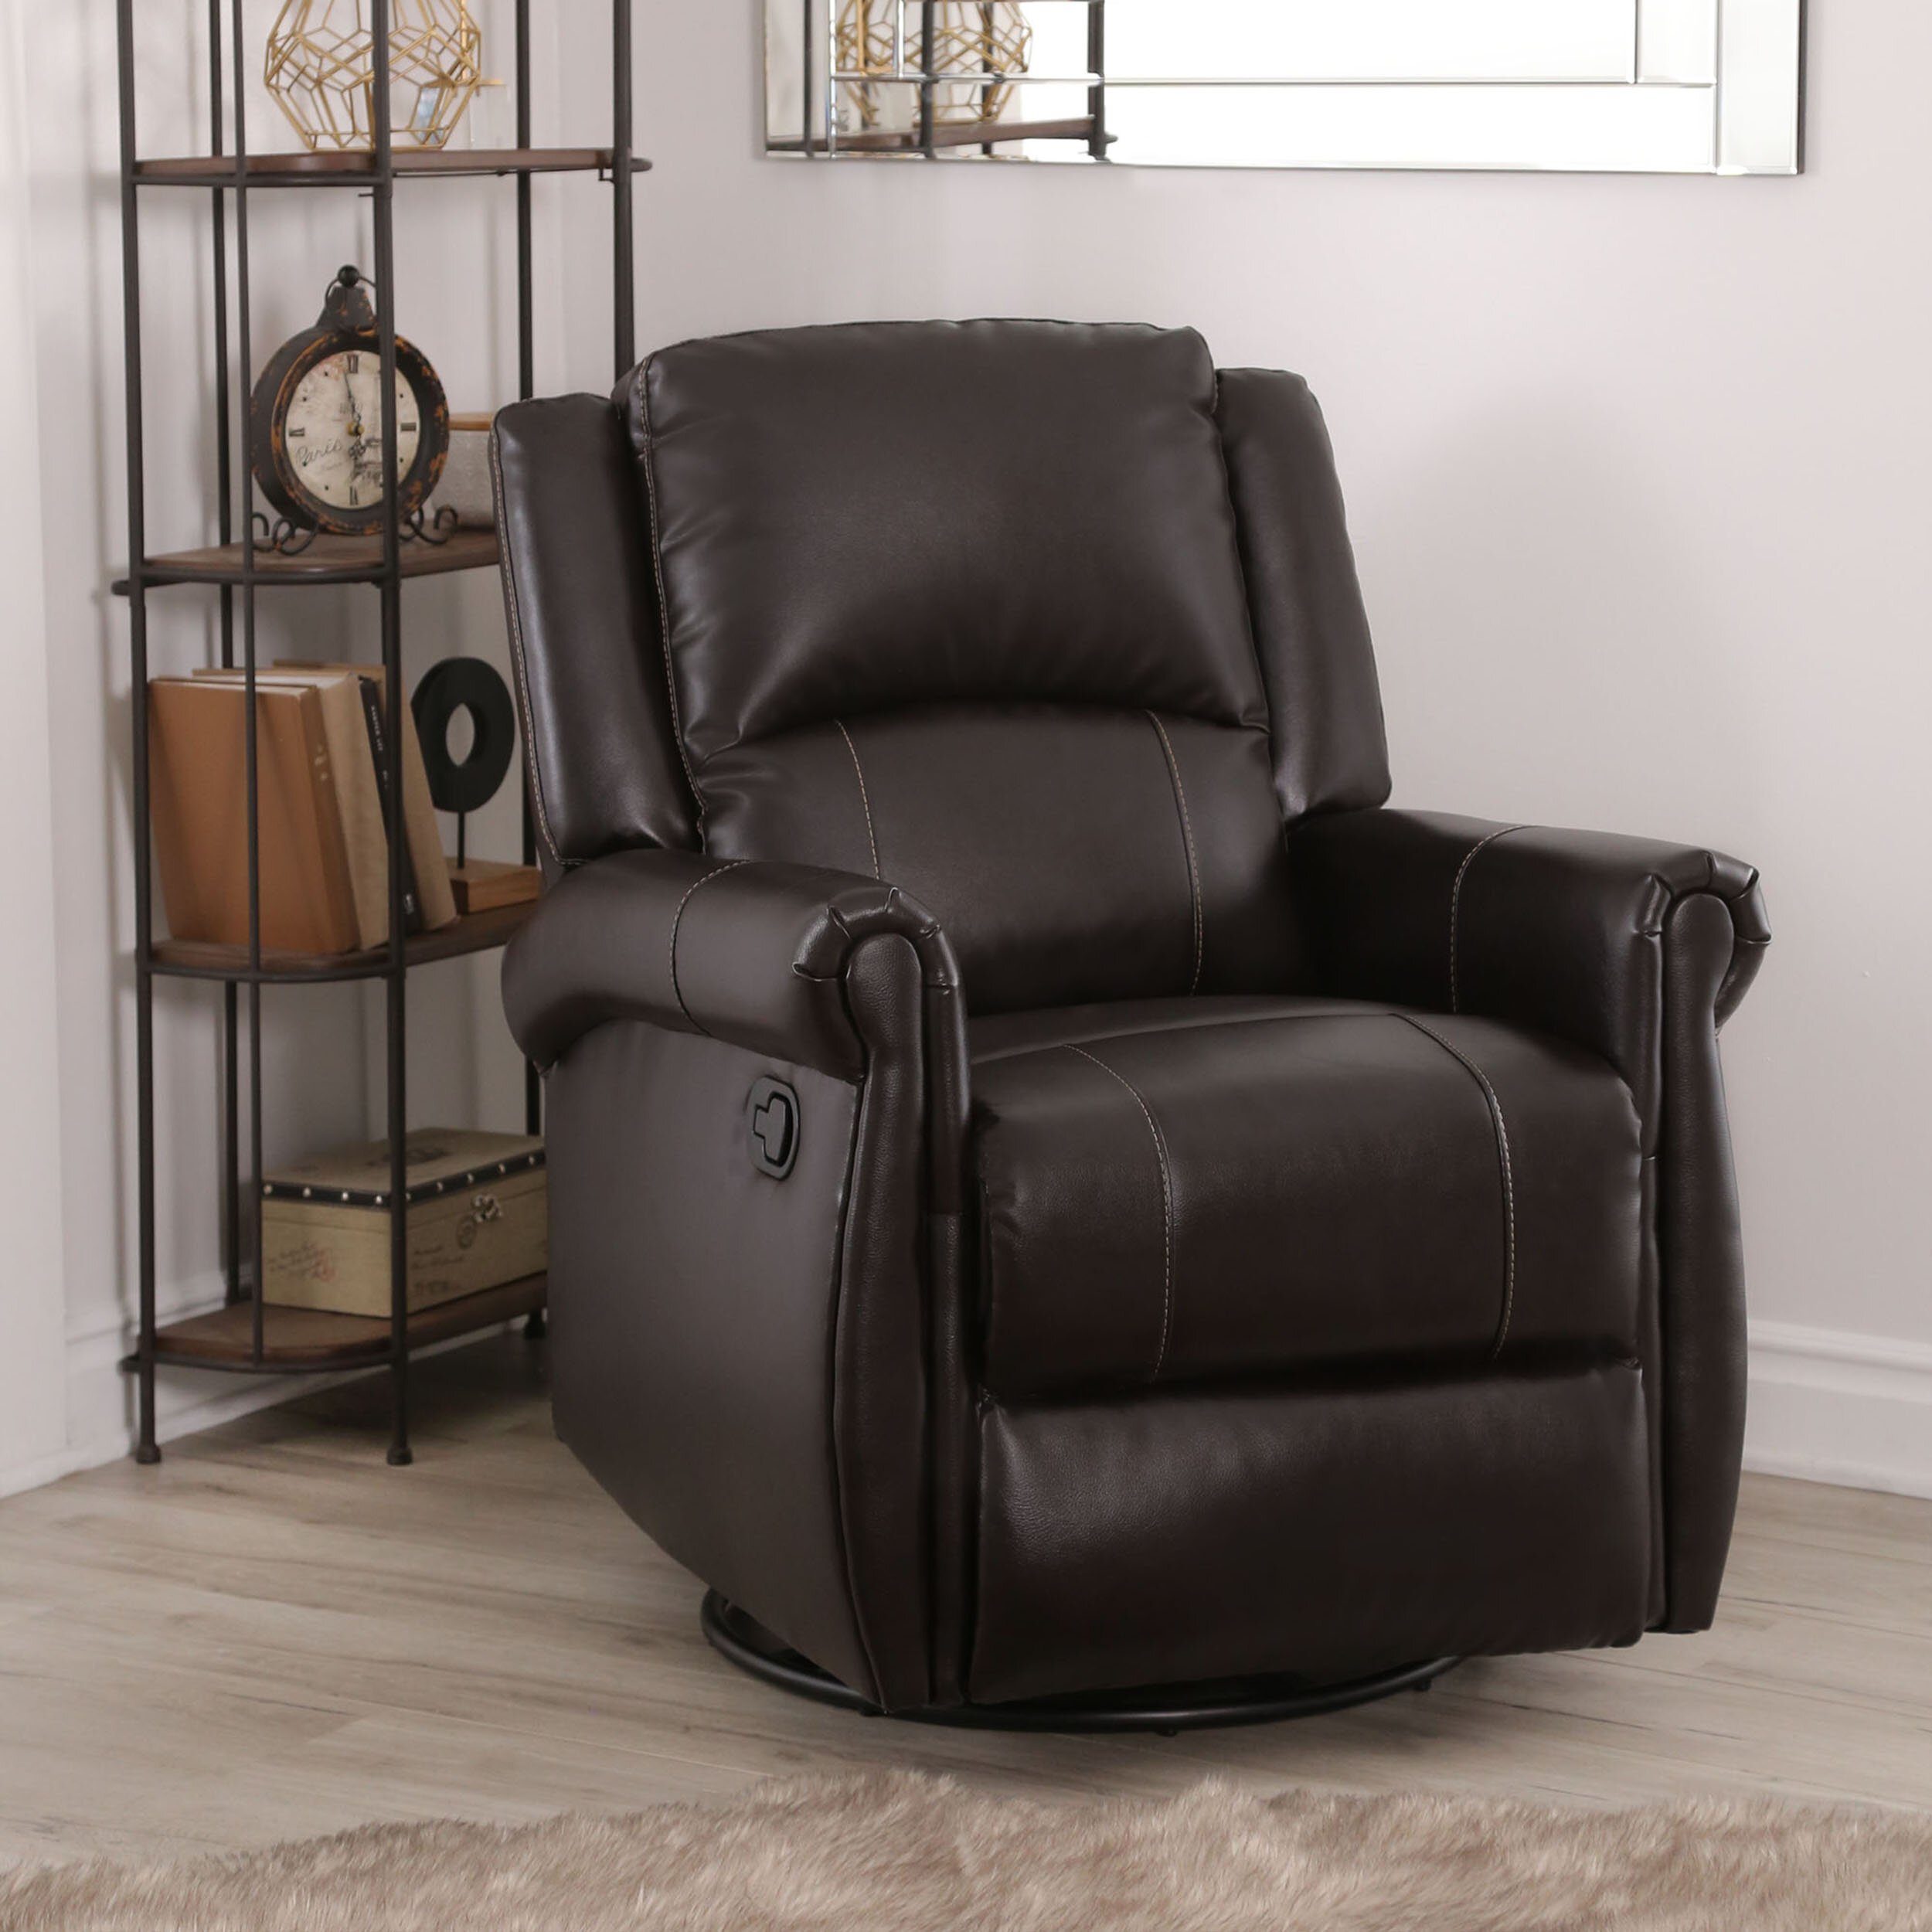 Darby Home Co Darby Reclining Glider Reviews Wayfair